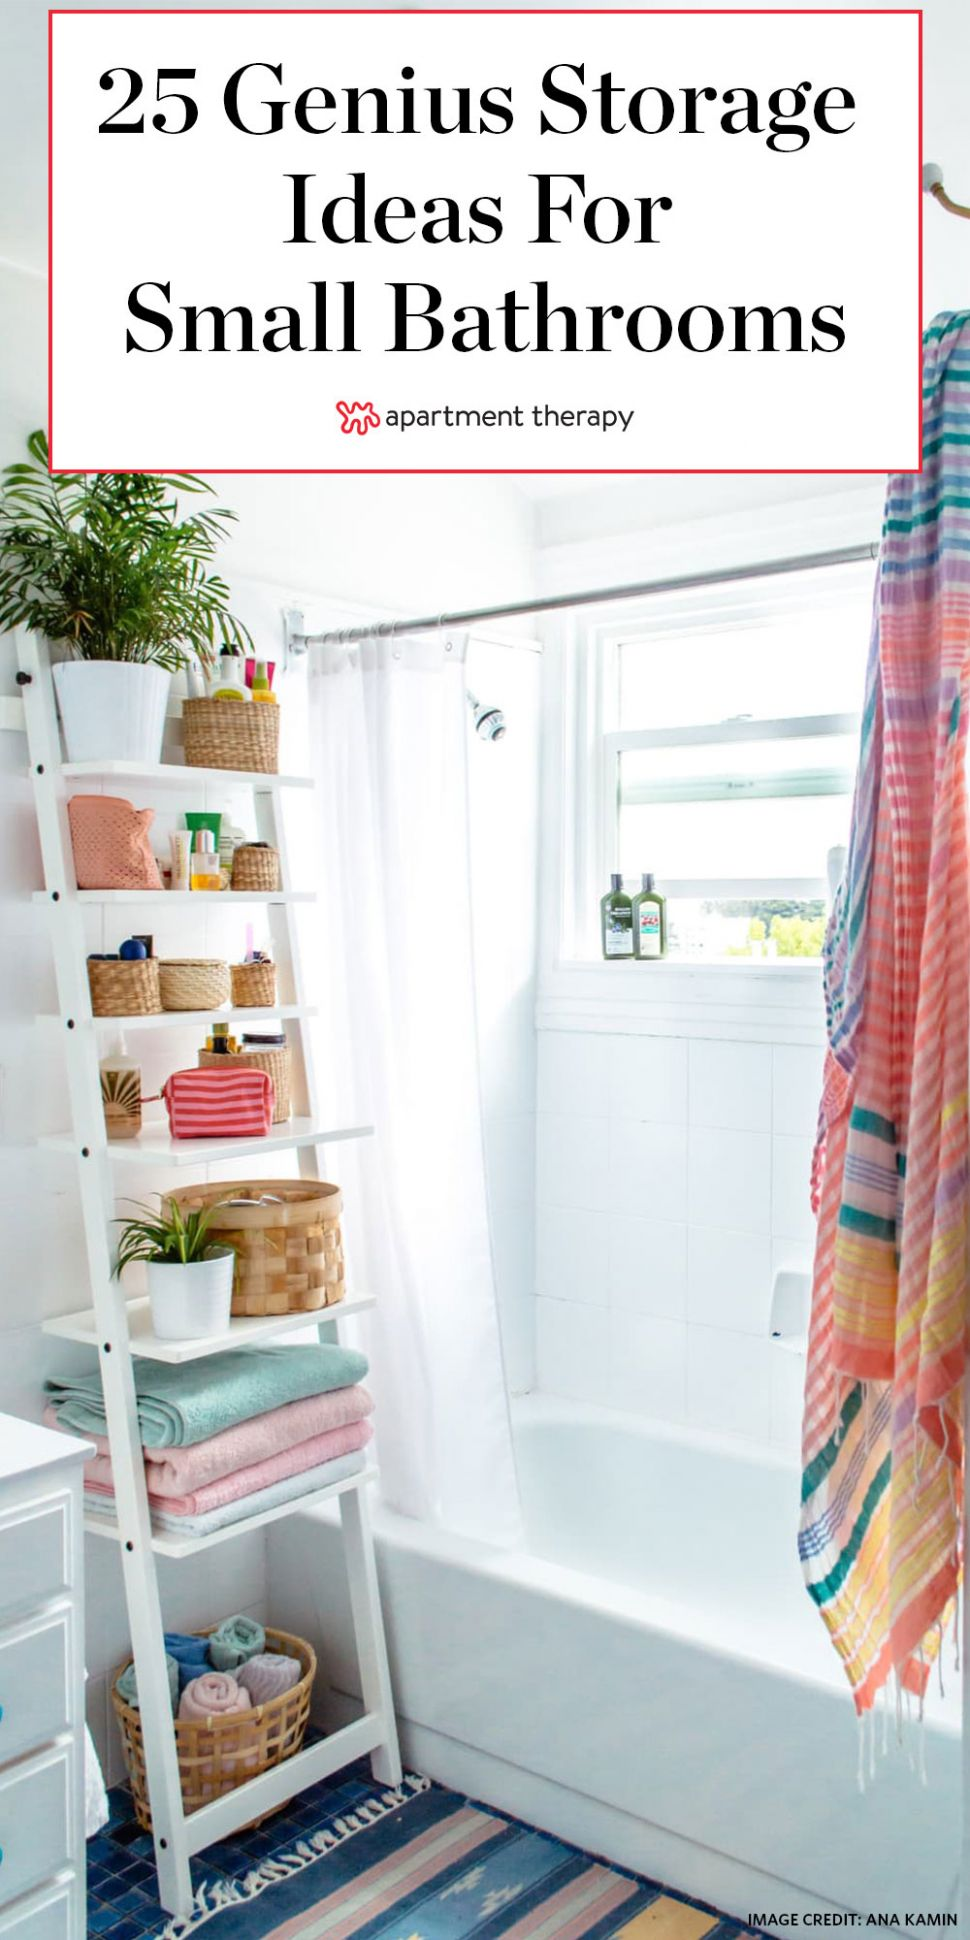 12 Small Bathroom Storage & Design Ideas - Storage Solutions for ...